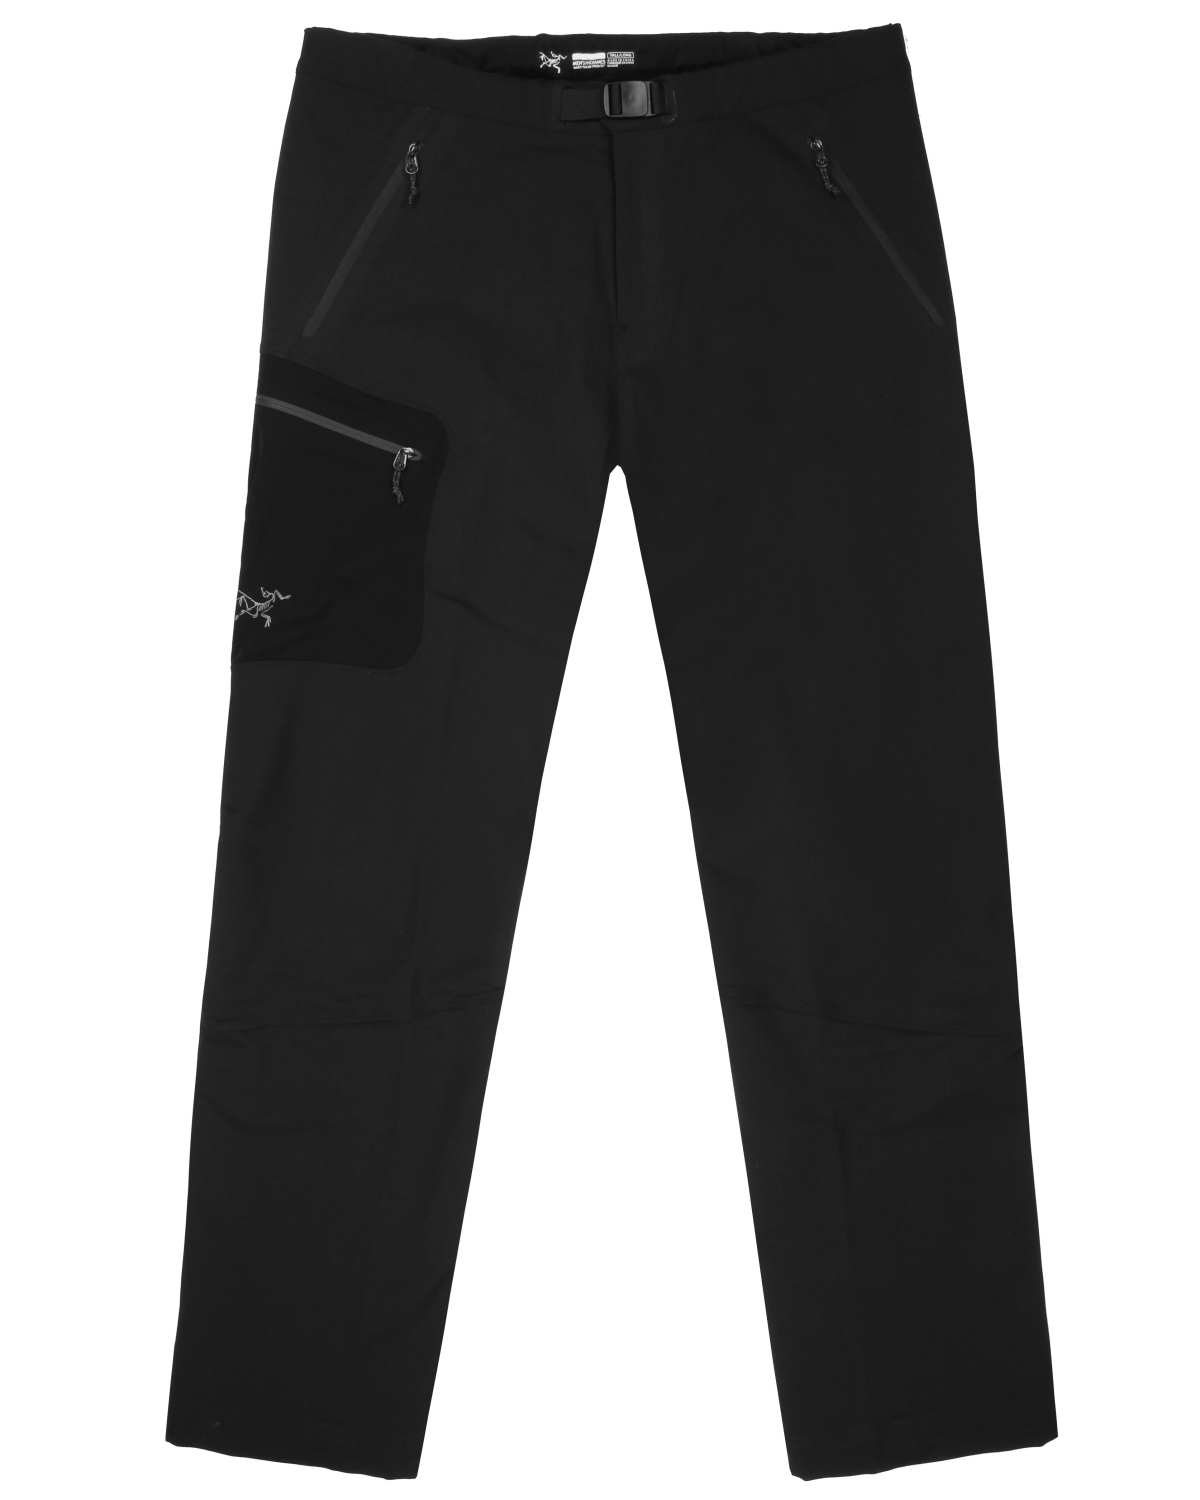 Gamma AR Pant Men's